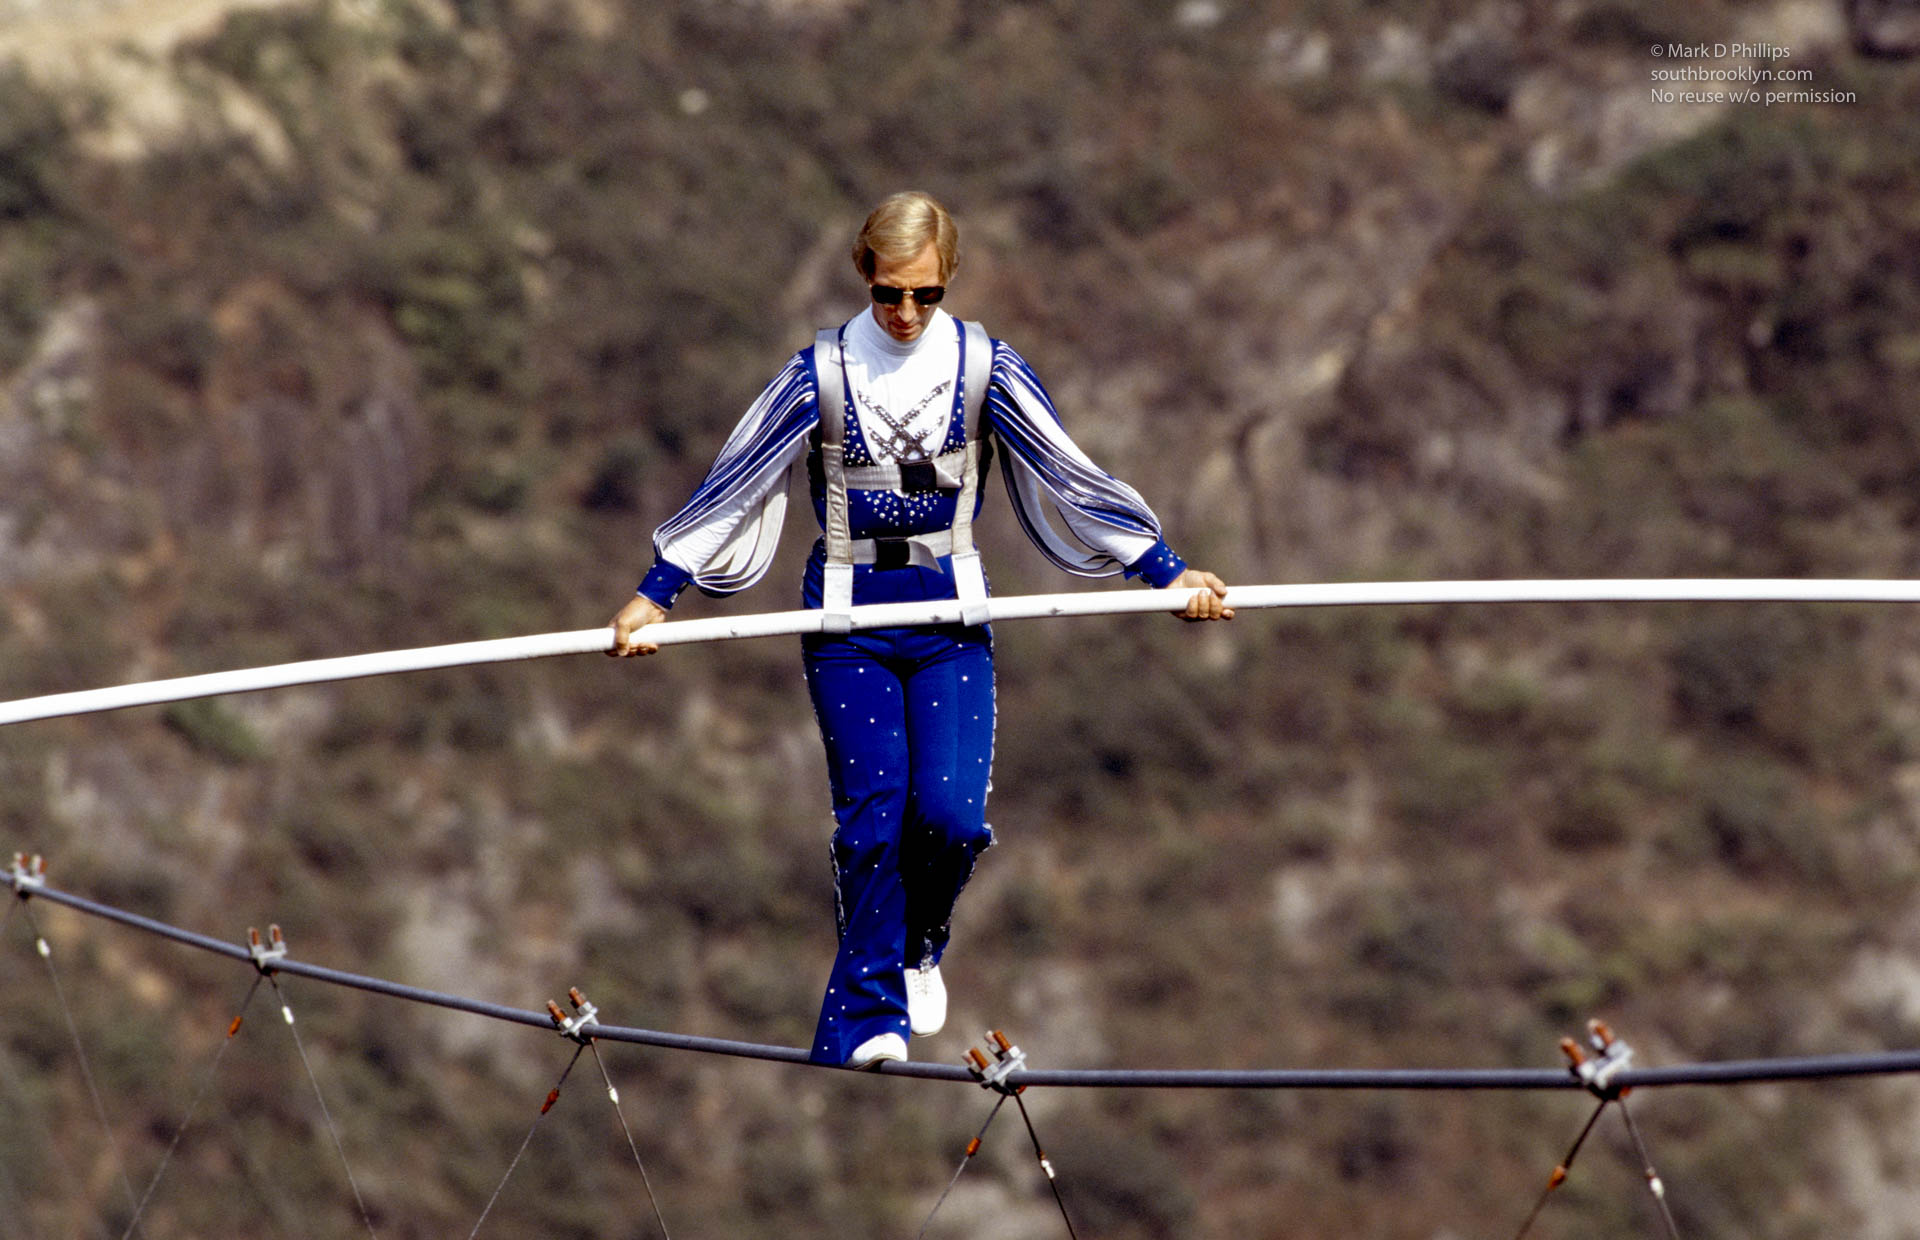 Jay Cochrane skywalks in the center of Qutang Gorge, China, during The Great China Skywalk on October 28, 1995. ©Mark D Phillips